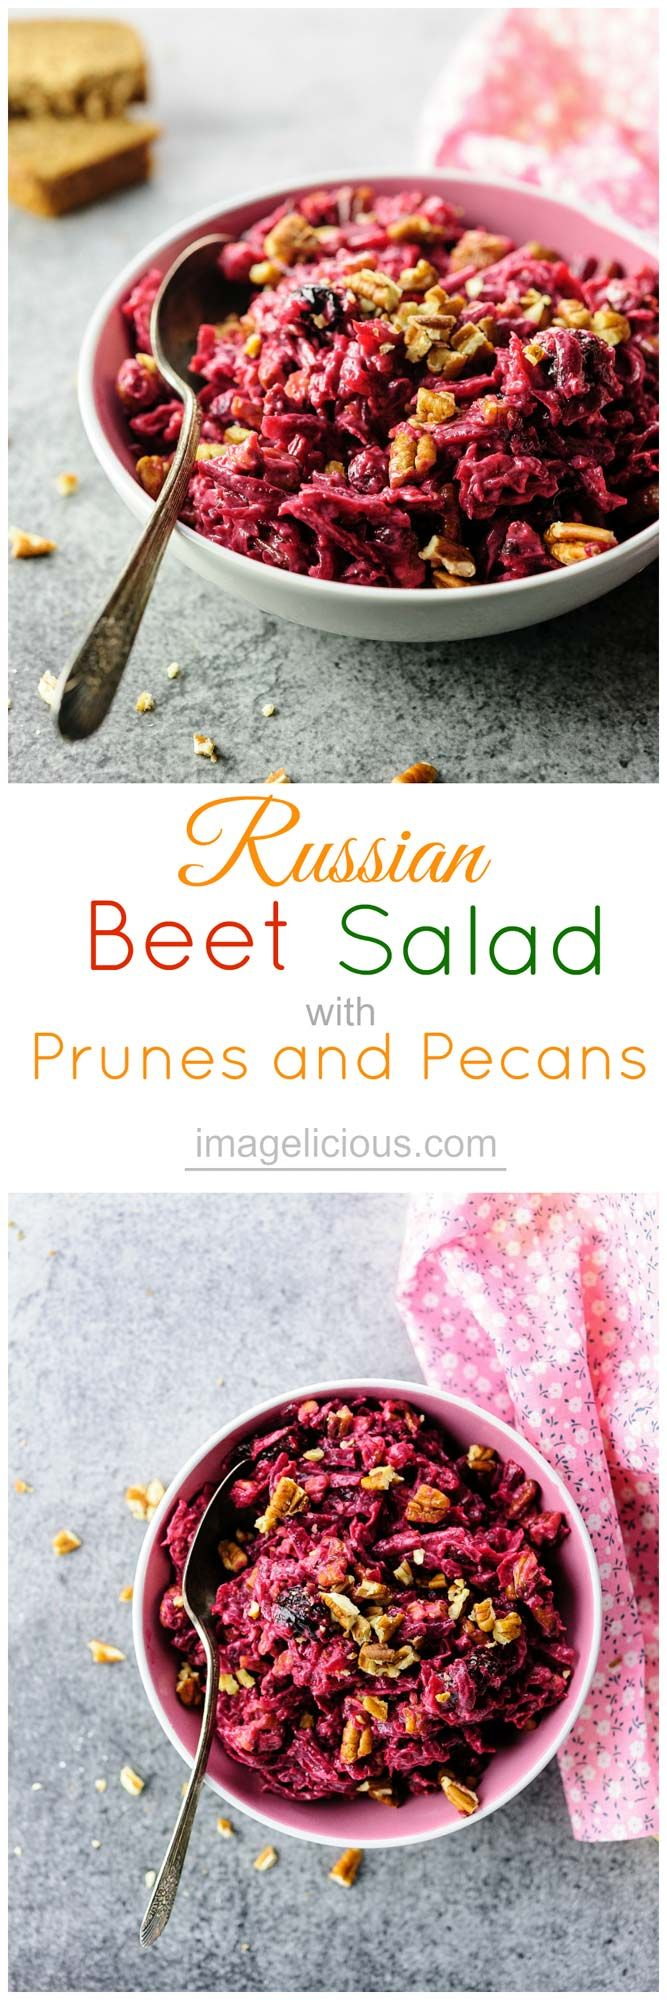 Russian Beet Salad with Prunes and Pecans is perfect for winter months. Packed with nutrients and vitamins, it uses seasonal beets and is also budget friendly | Imagelicious